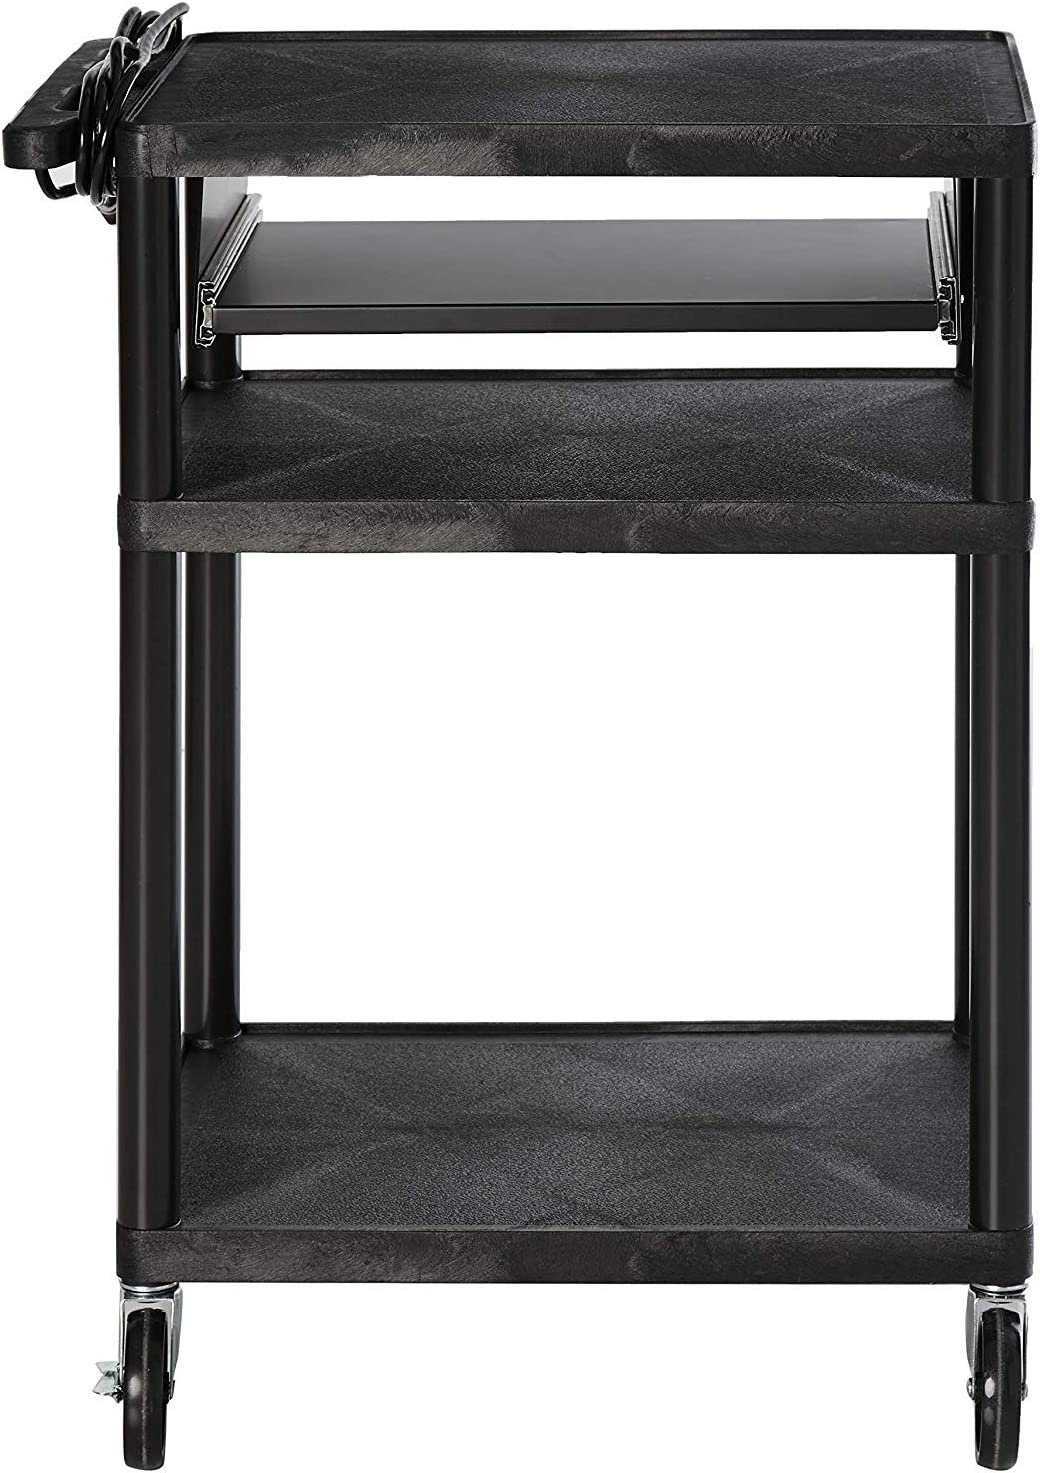 Offex Mobile 3-Shelf Presentation Storage AV Cart with Electric 4 Casters, Black OF-LP34LE-B